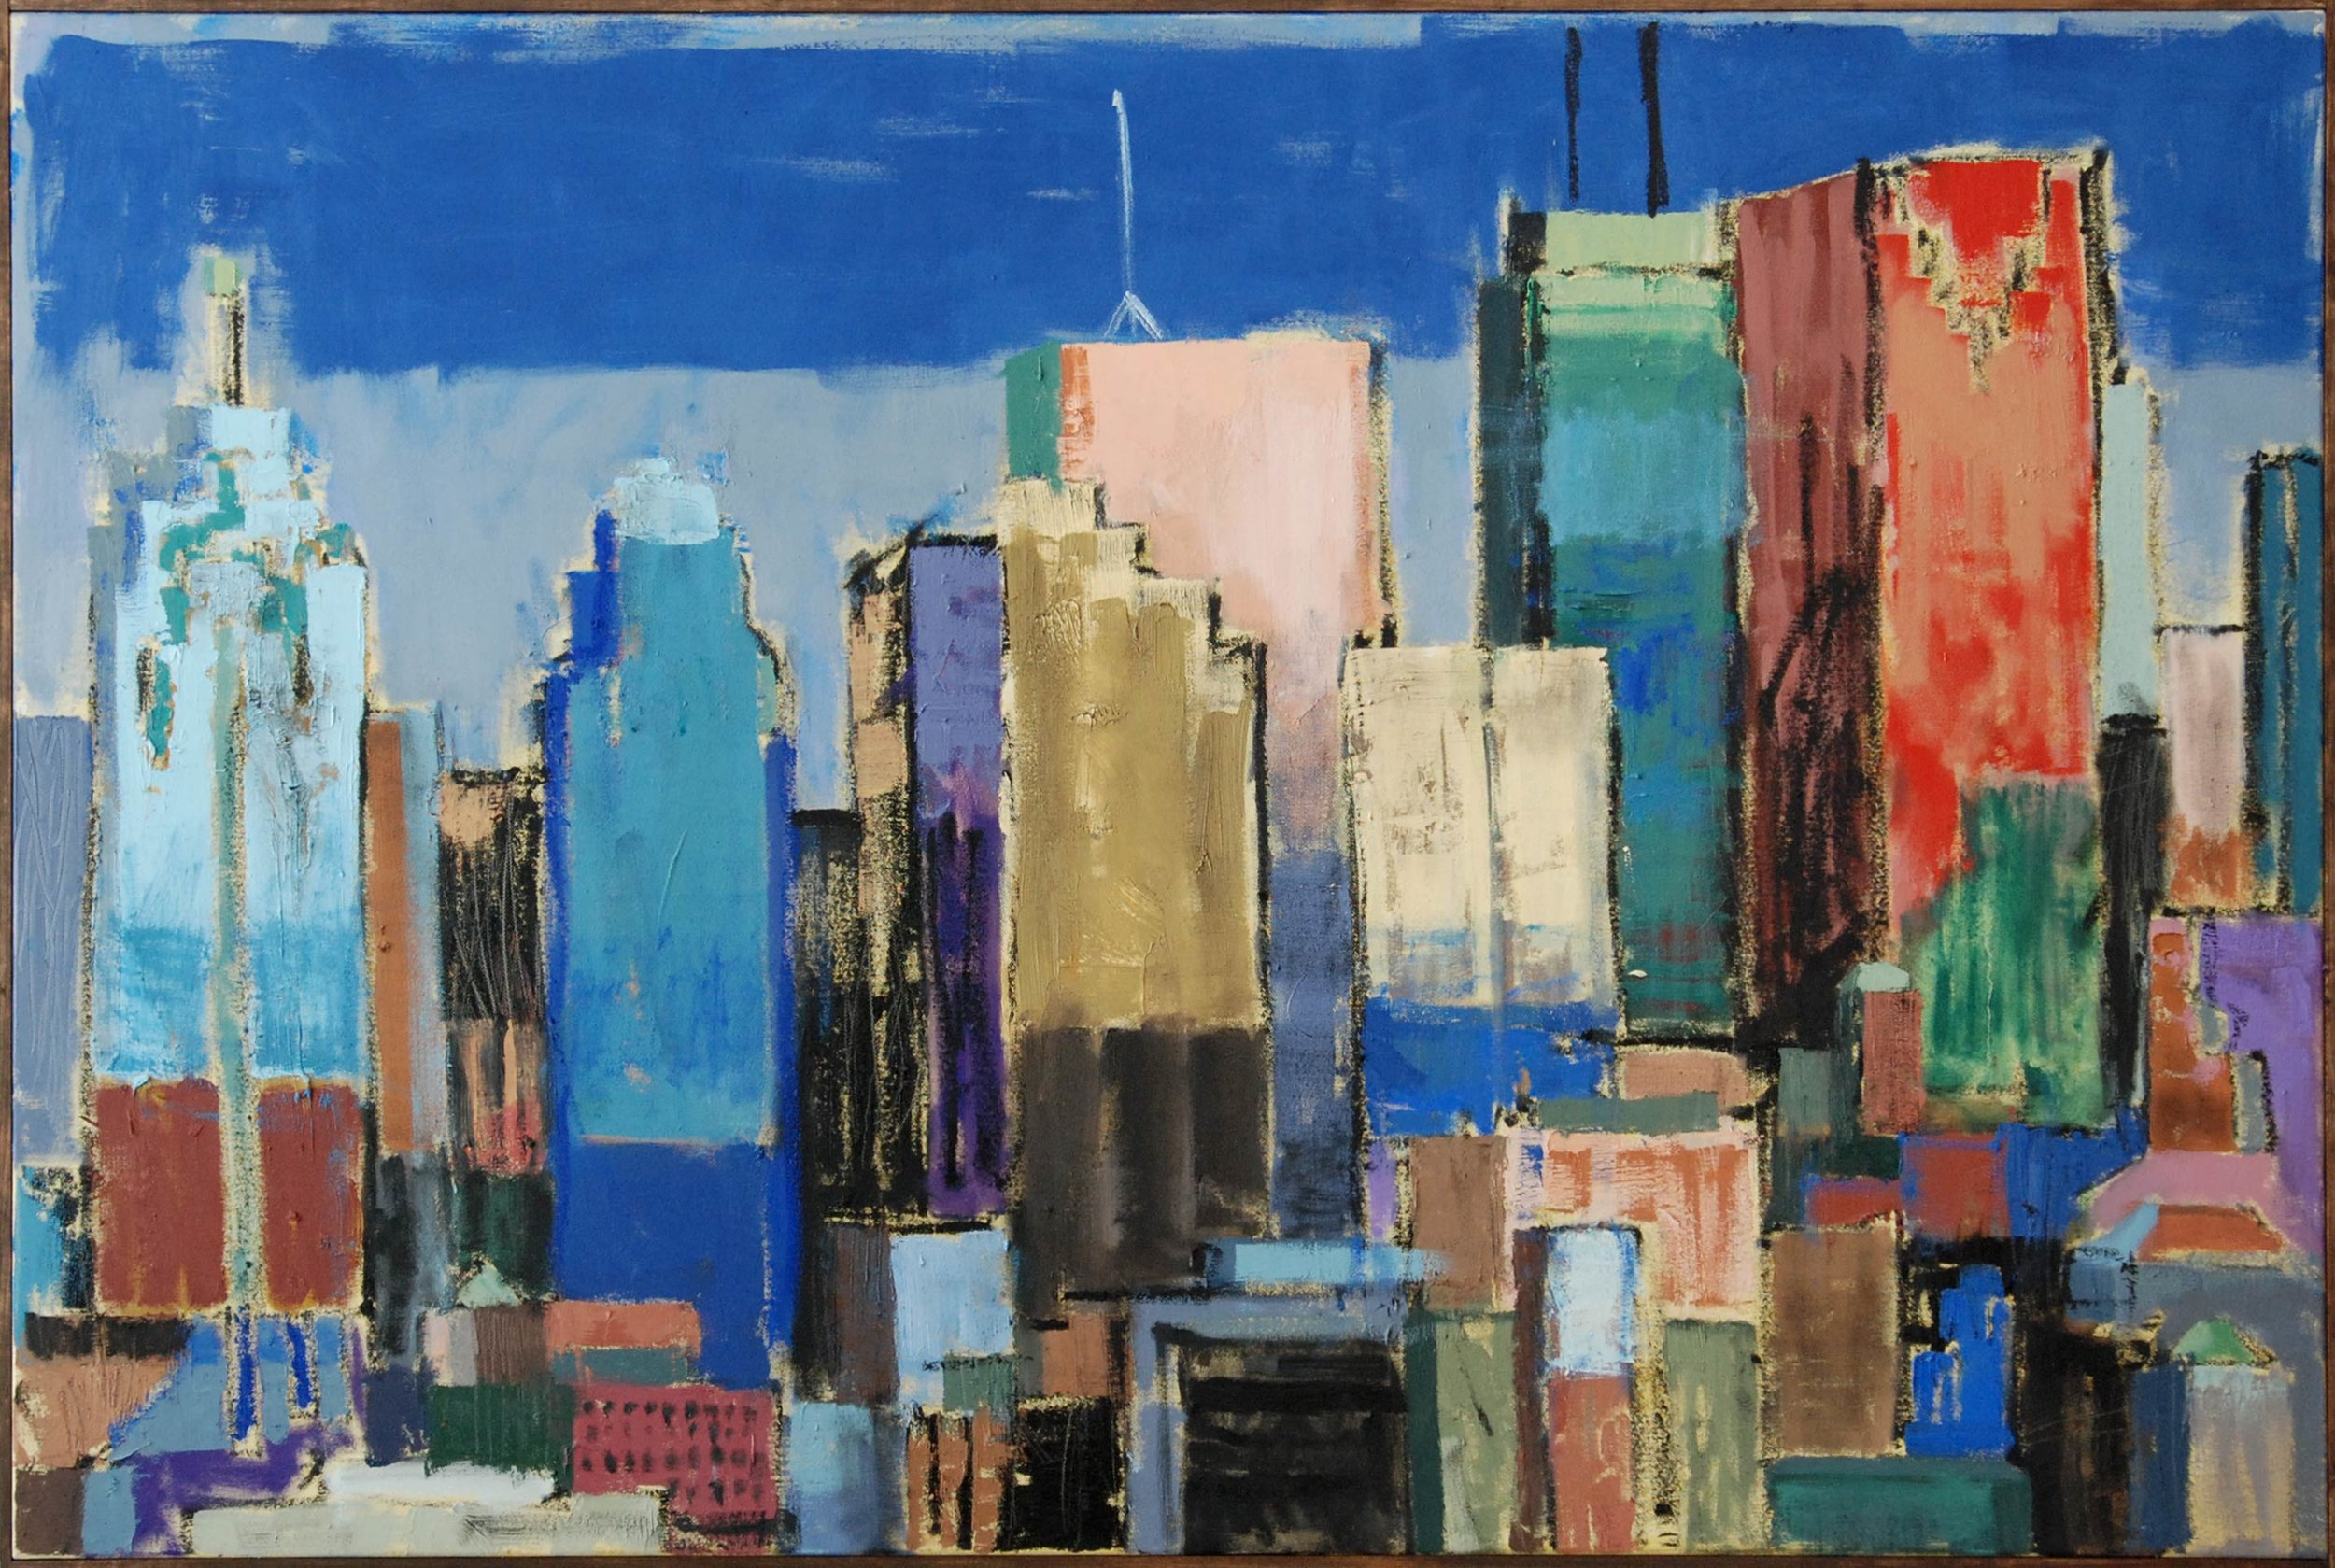 Skyline East, 2019. 48 x 32 inches, oil on canvas.